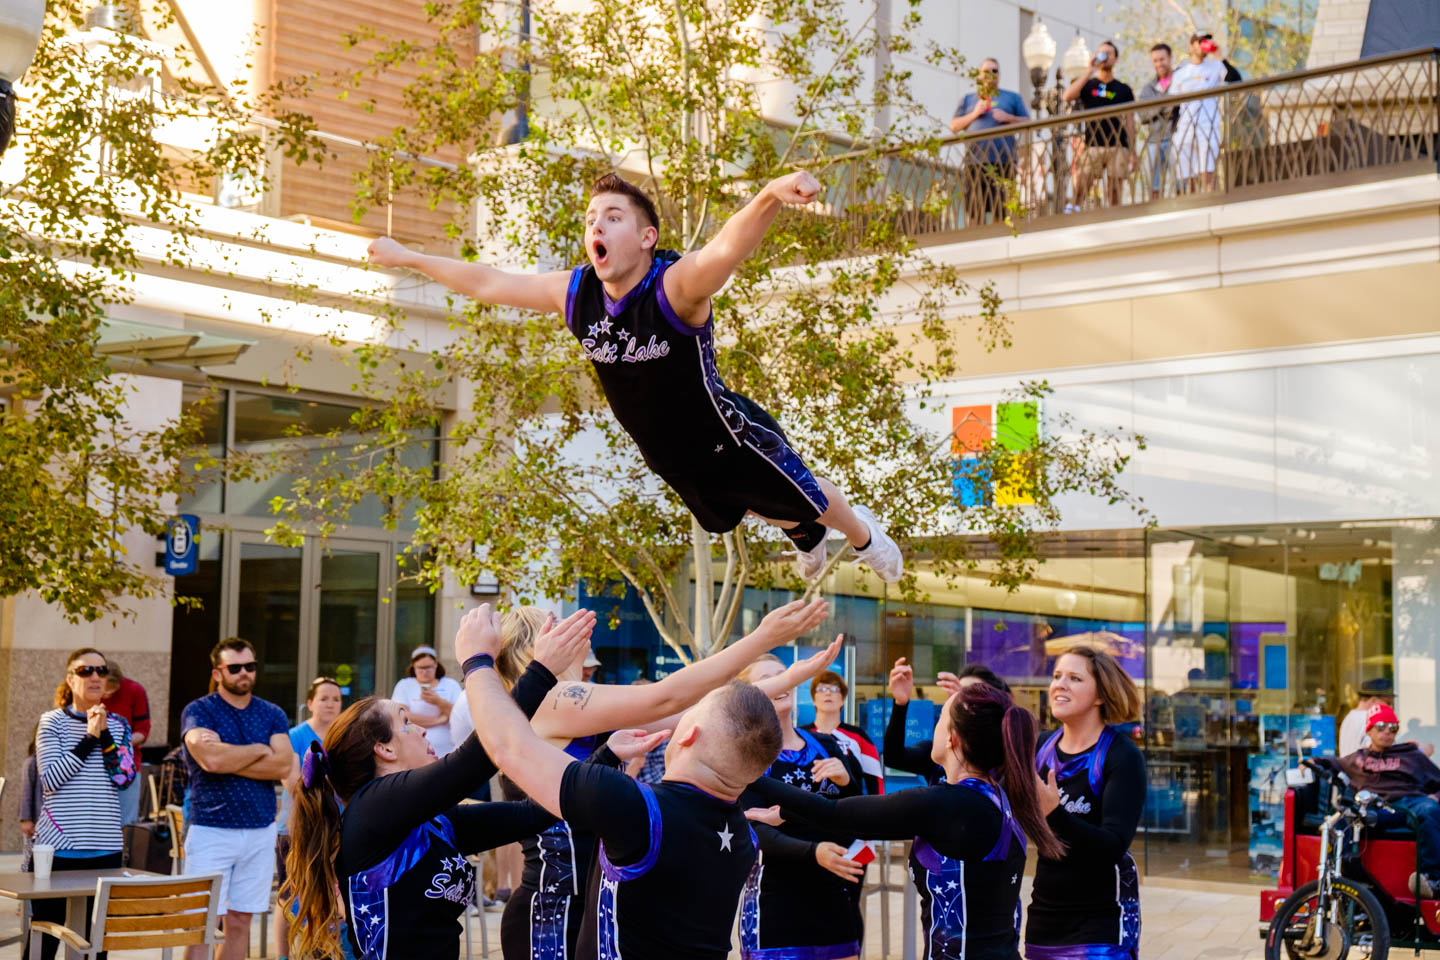 Cheer Salt Lake perform death defying feats